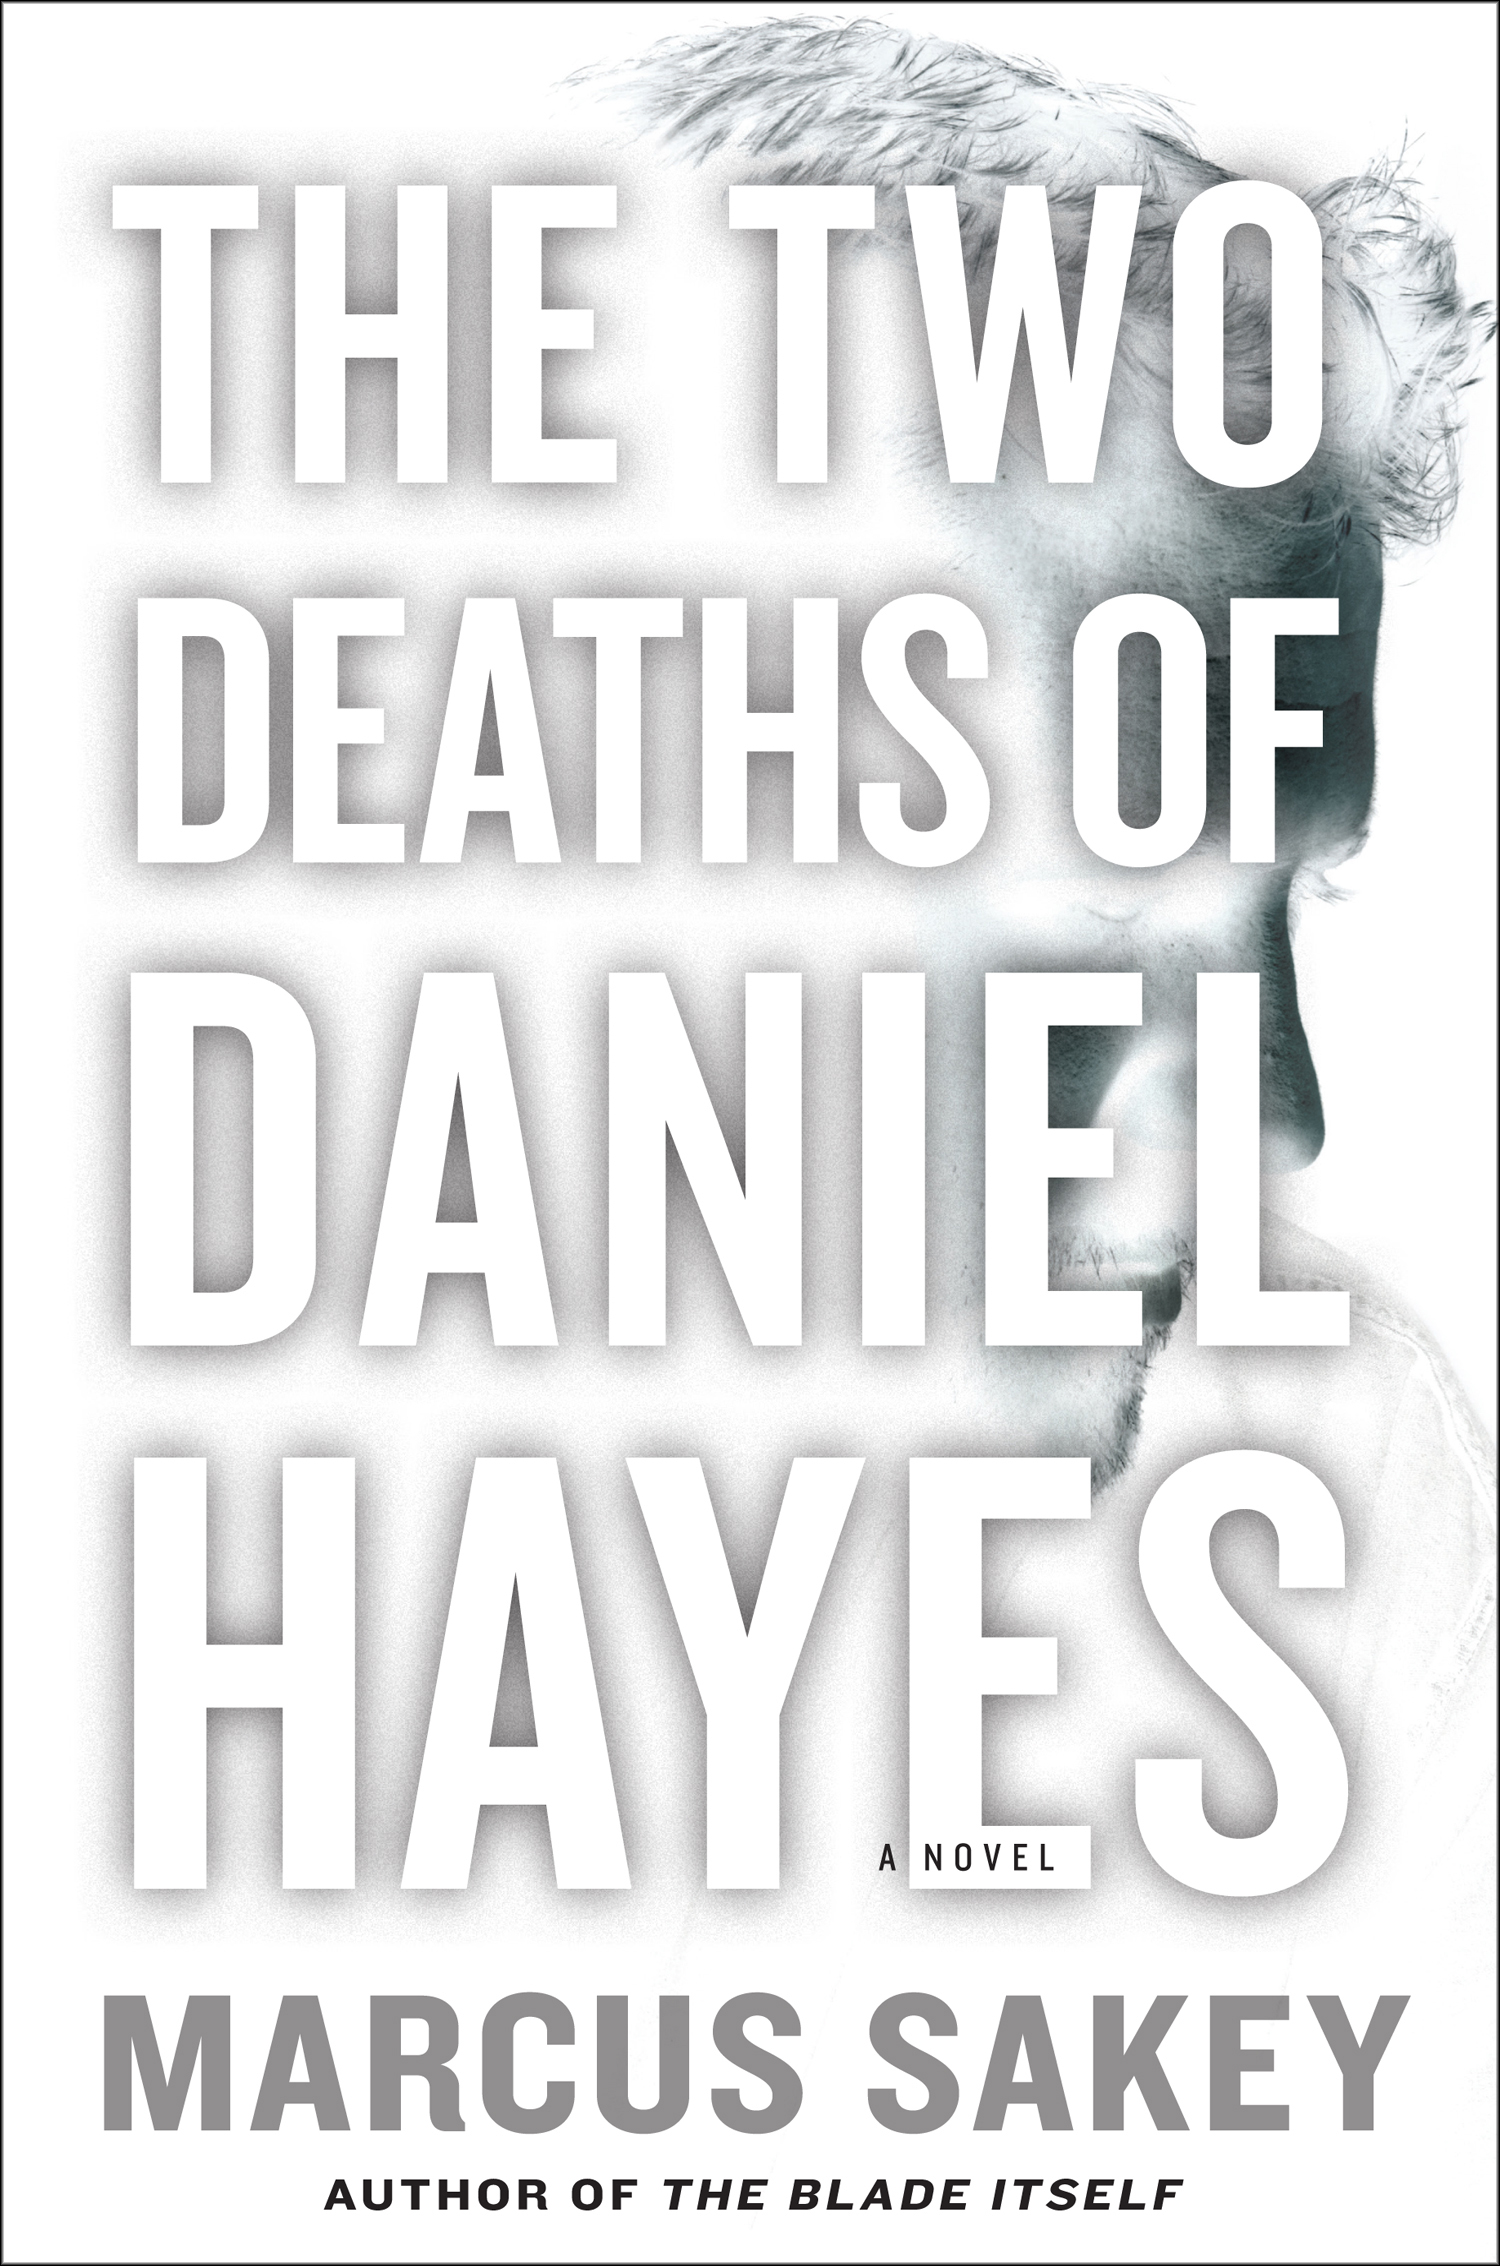 THE-TWO-DEATHS-OF-DANIEL-HAYES-hc-ss6.jpg